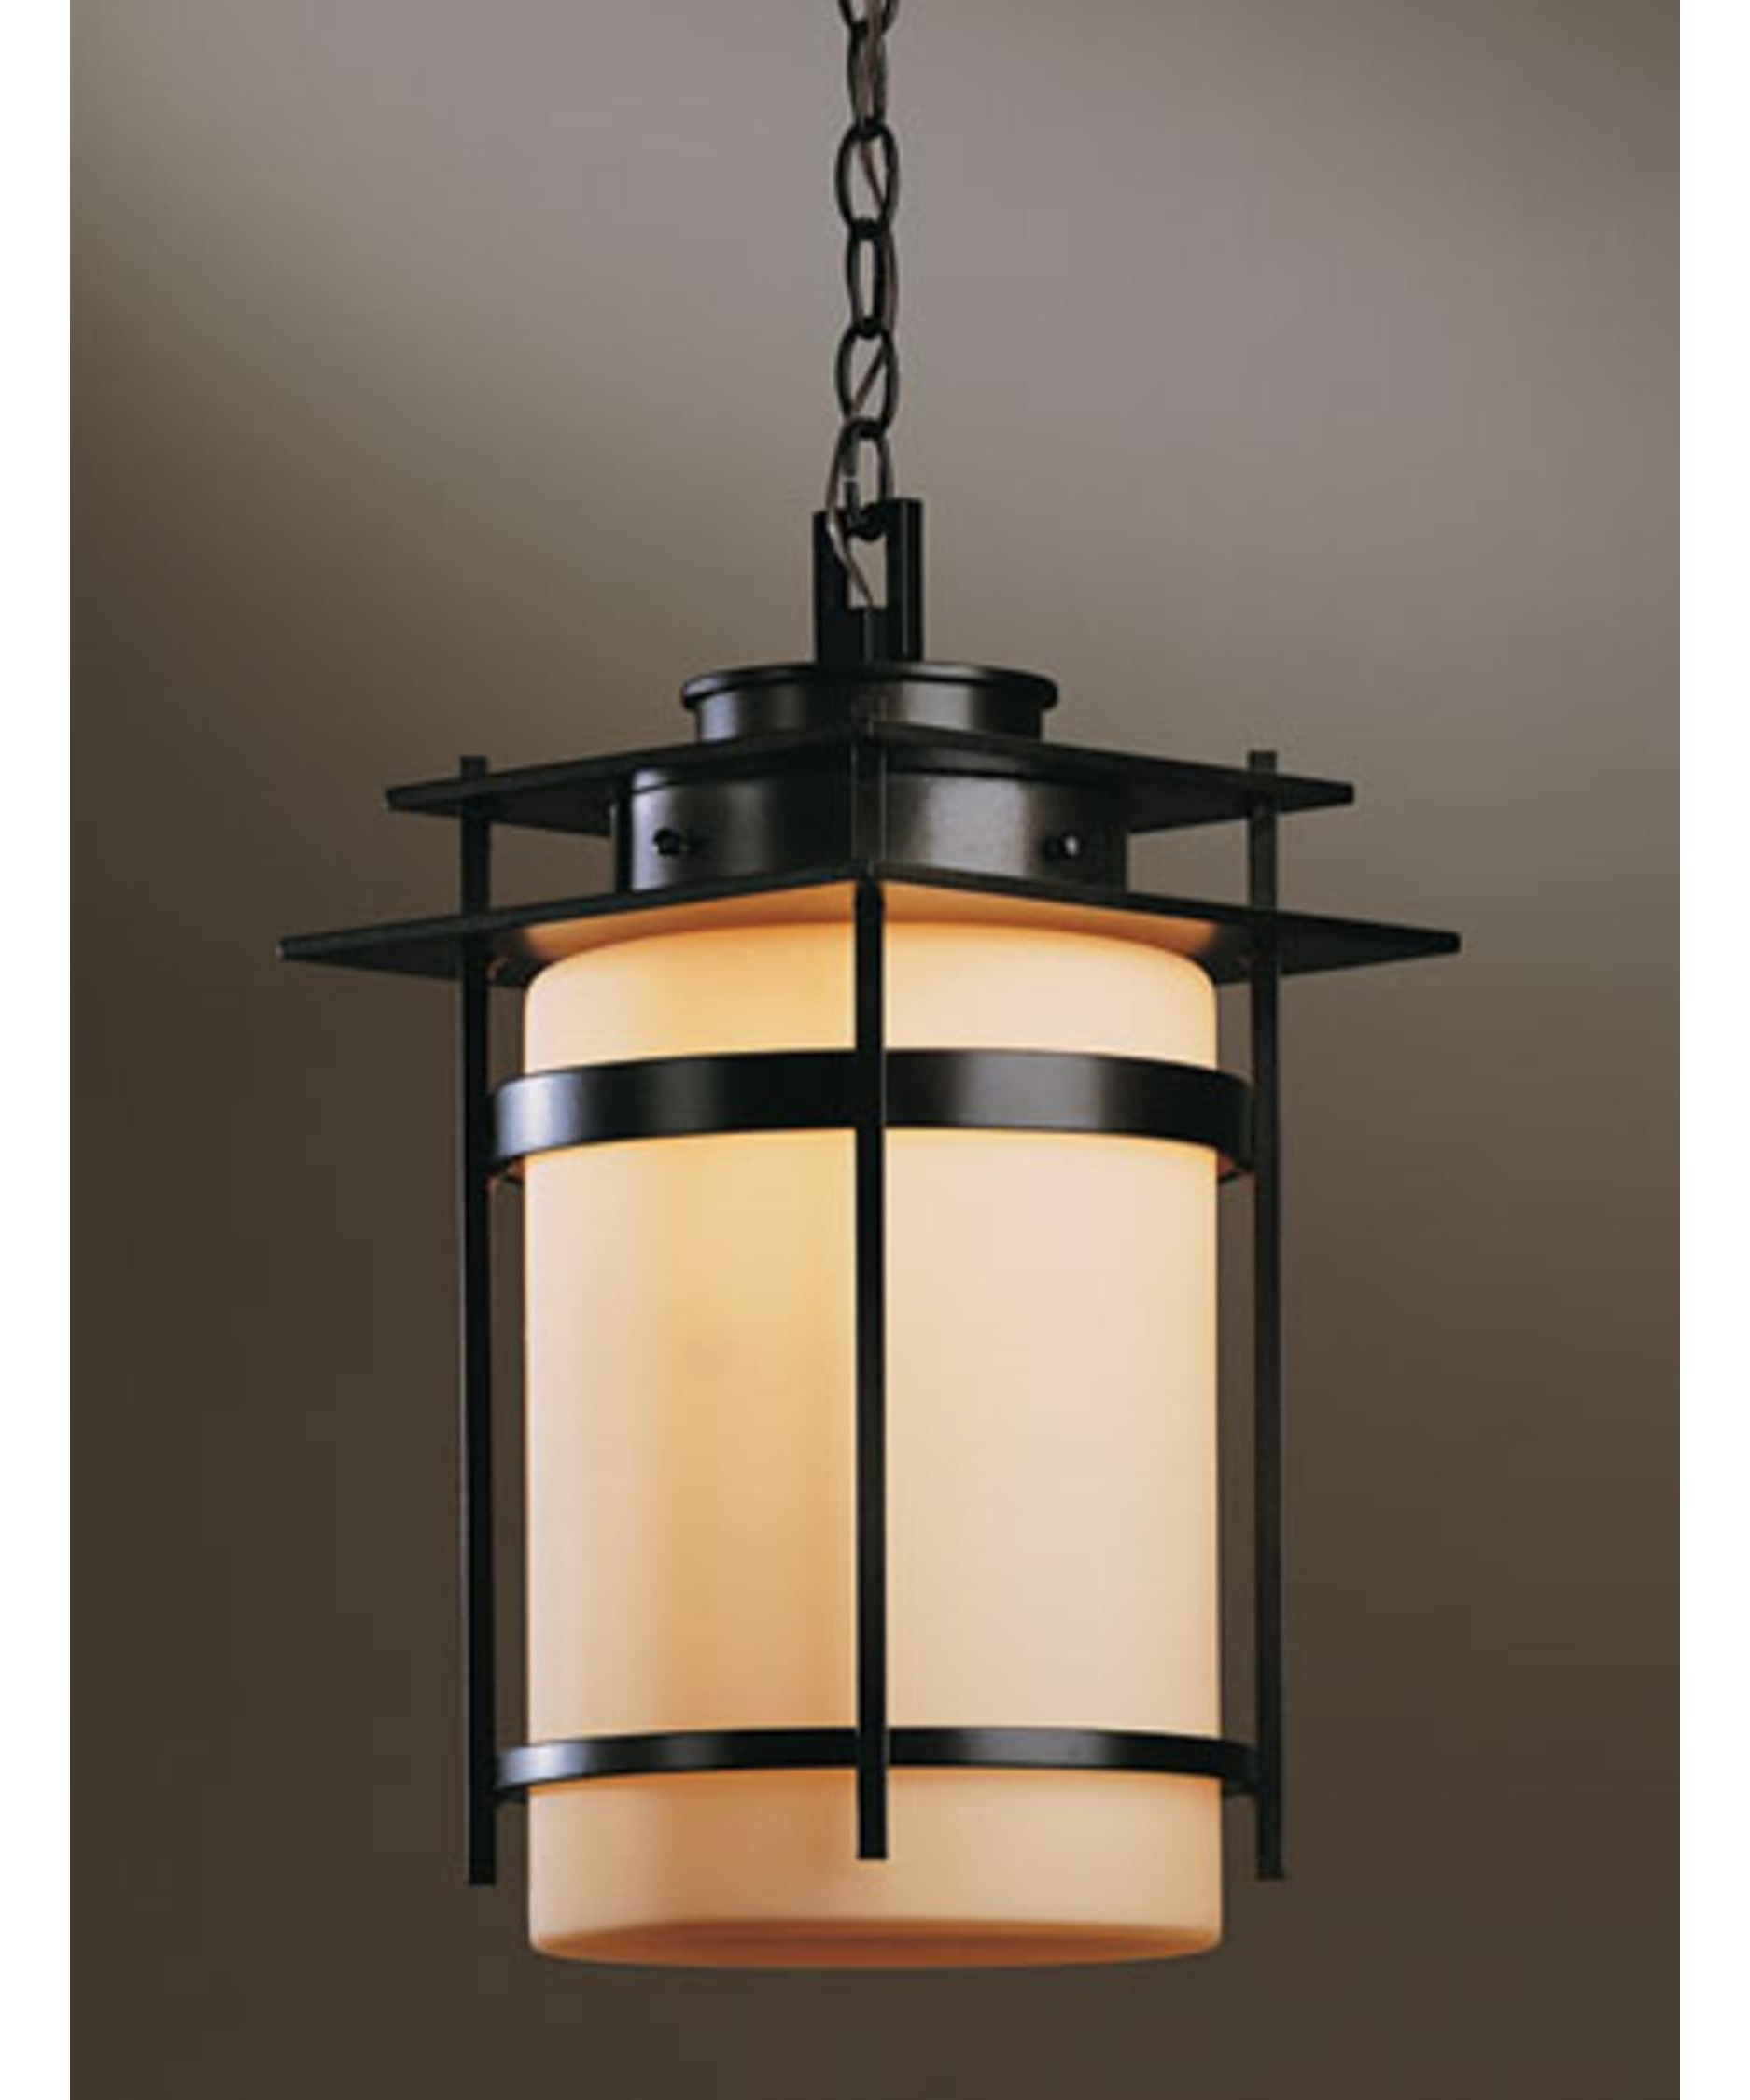 Widely Used Hanging Porch Hinkley Lighting In Hanging Porch Light Hinkley Lighting 2372 Nantucket 6 Inch Wide (View 6 of 20)